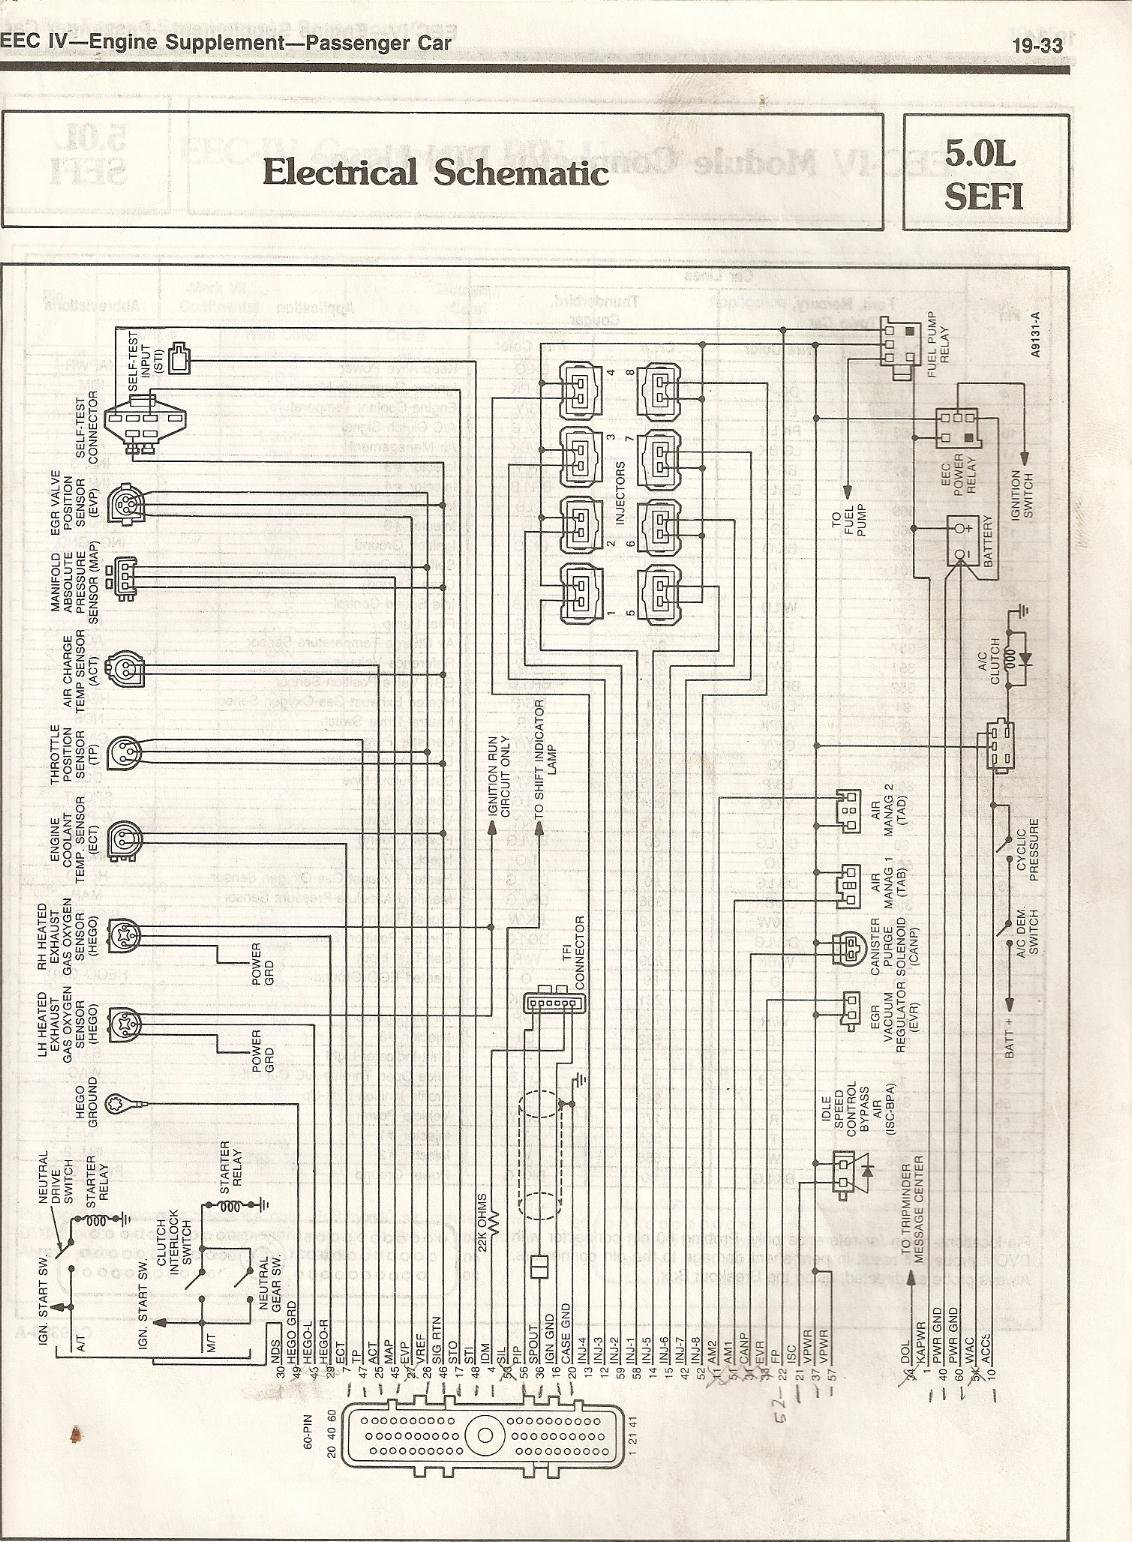 495529d1454445979 302 5 0 efi swap computer pins 1986 5.0 eec pinout eec iv wiring diagram eec iv bracket \u2022 free wiring diagrams life  at fashall.co